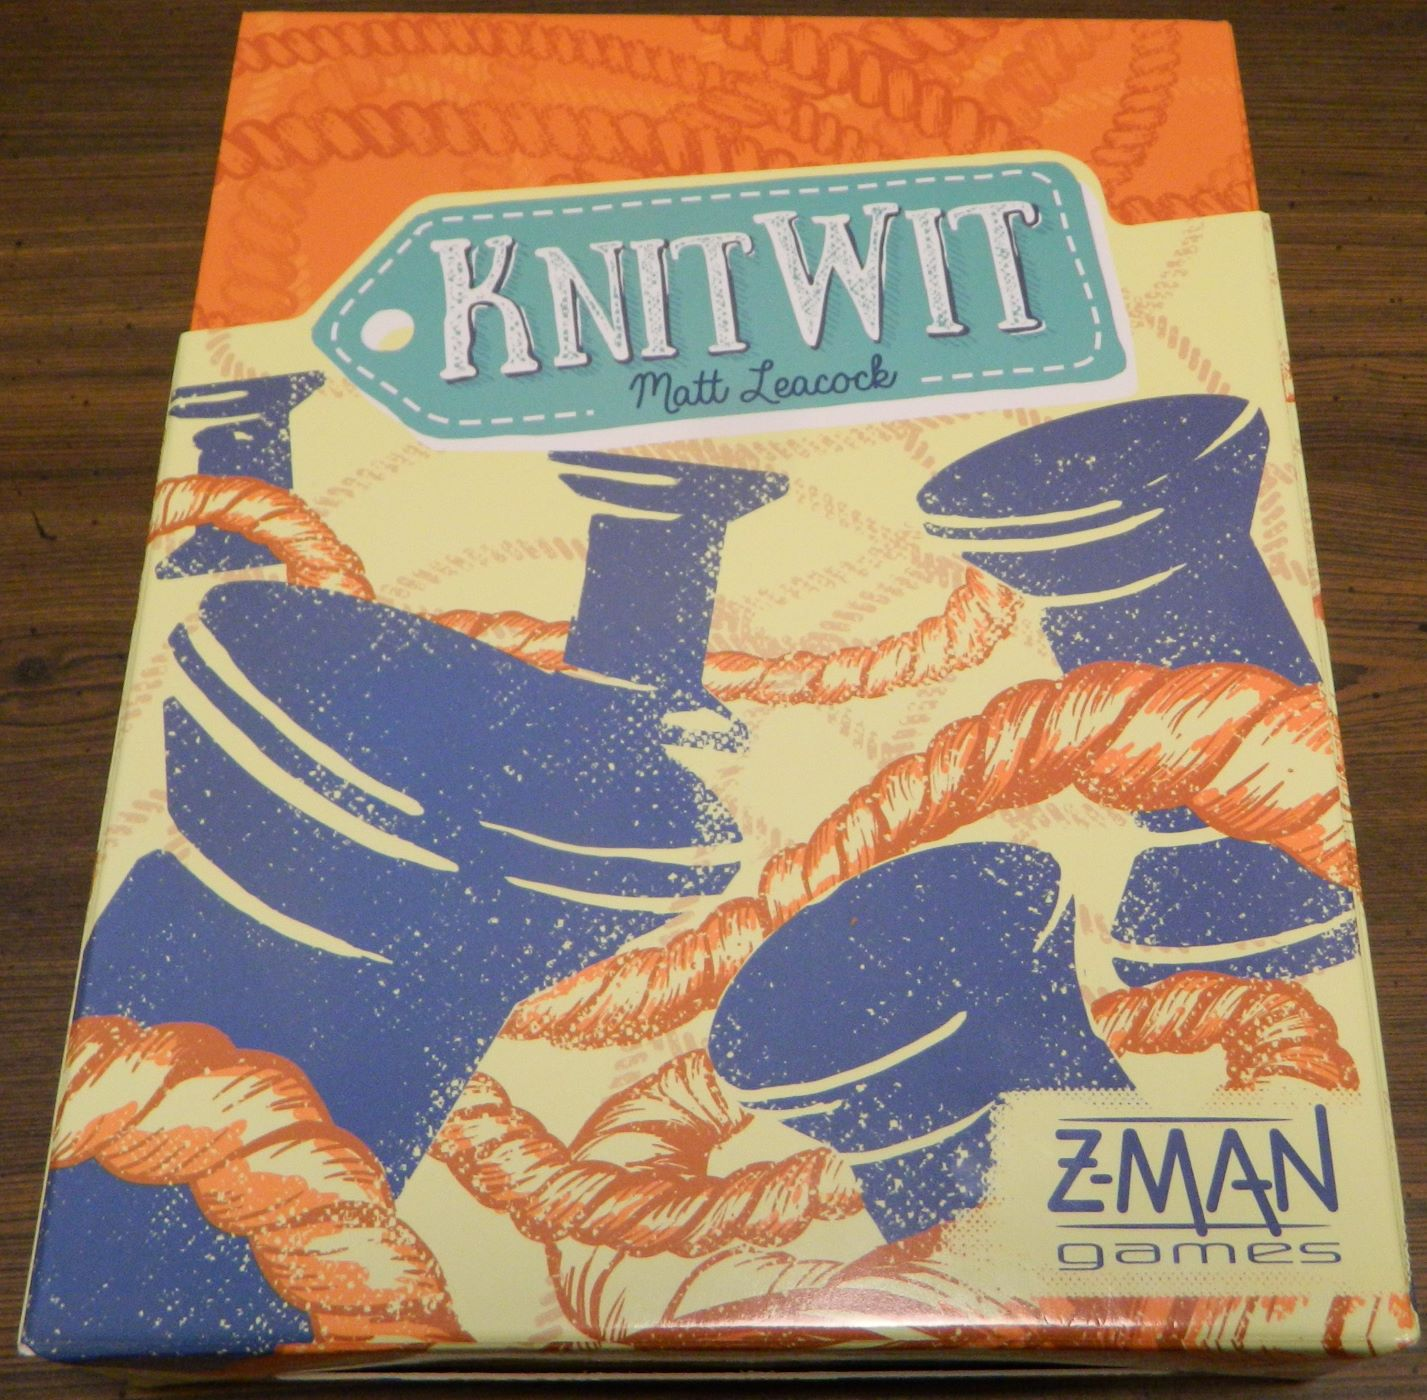 Box for Knit Wit